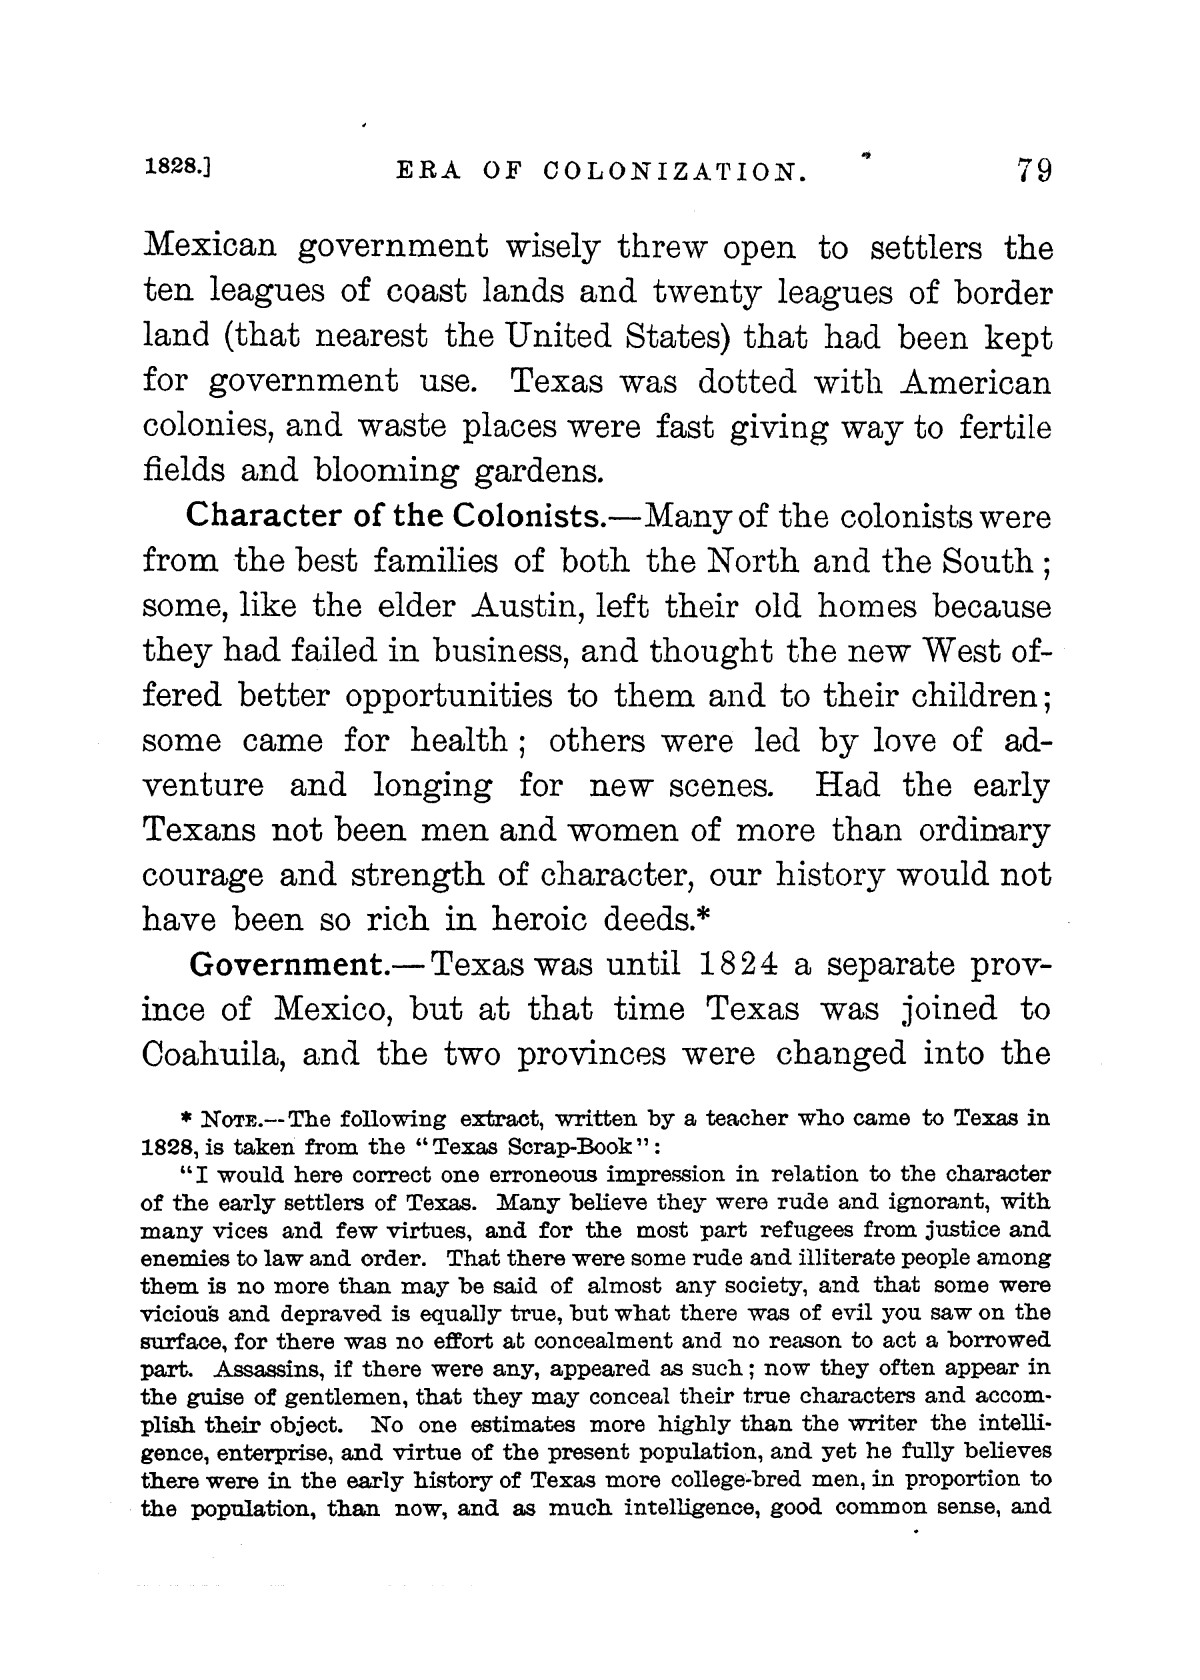 A new history of Texas for schools : also for general reading and for teachers preparing themselves for examination                                                                                                      [Sequence #]: 95 of 412